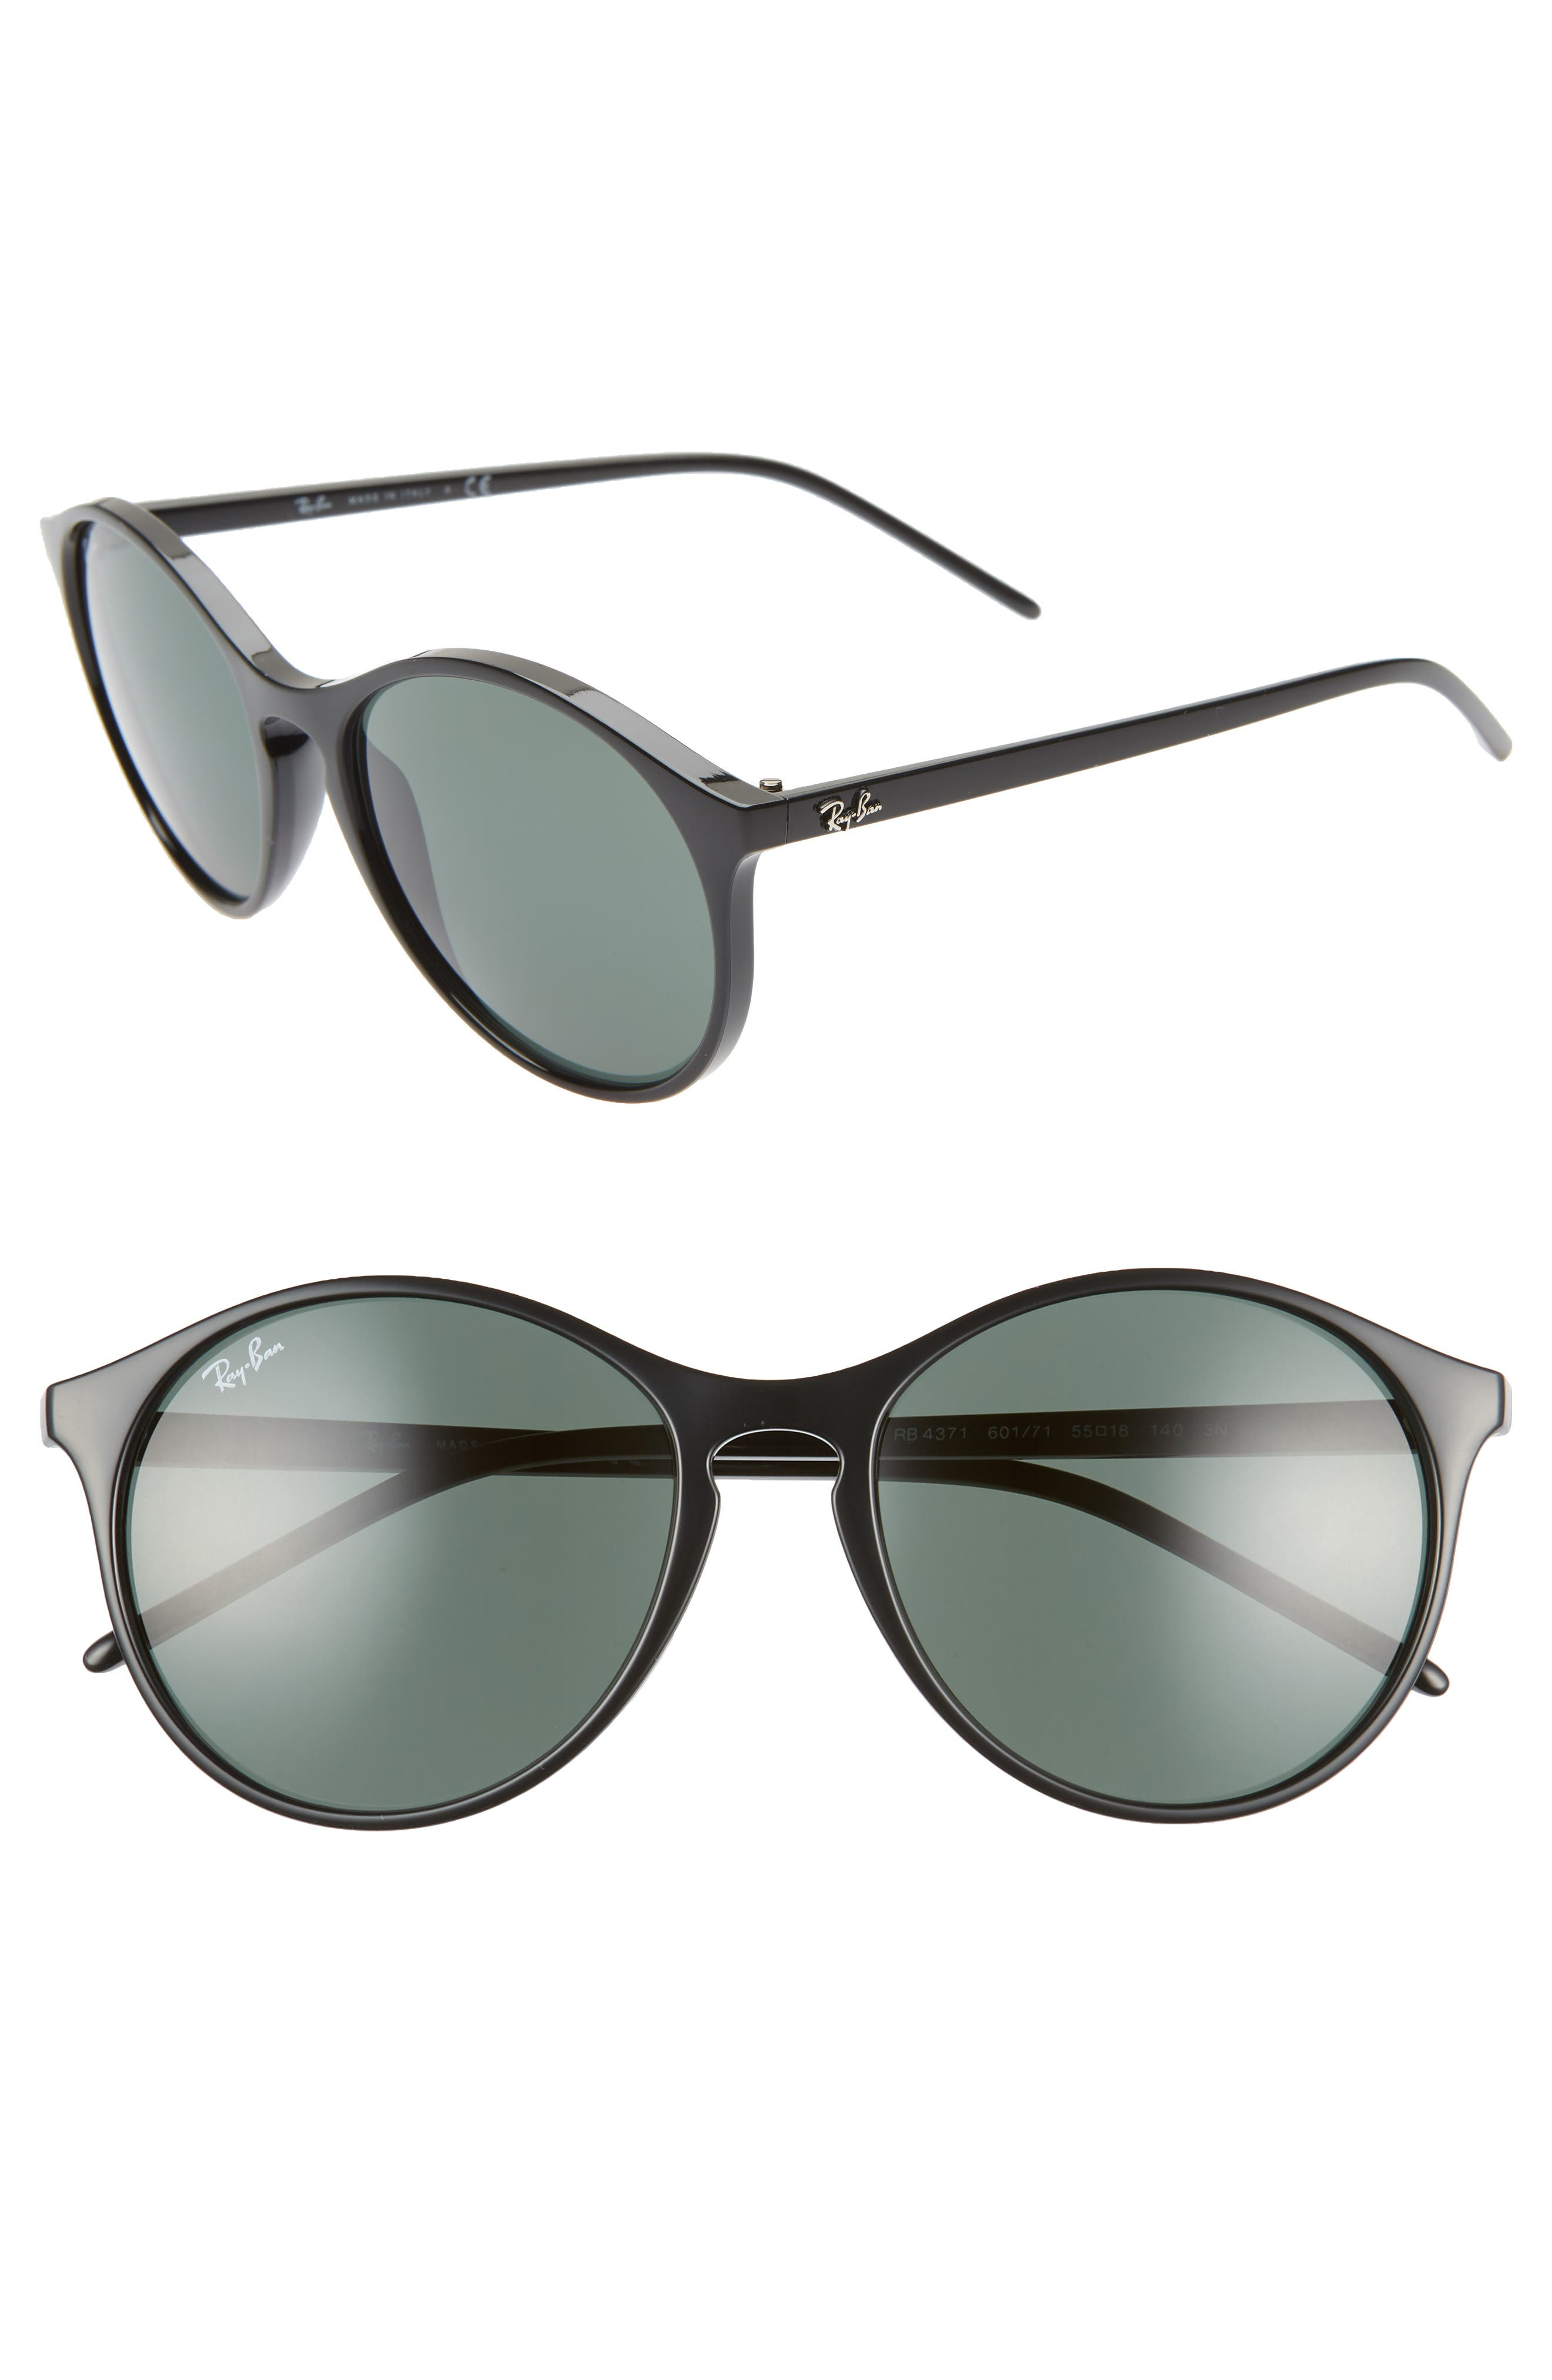 c9b6764755b Ray-Ban Highstreet 55Mm Round Sunglasses - Black  Green Solid